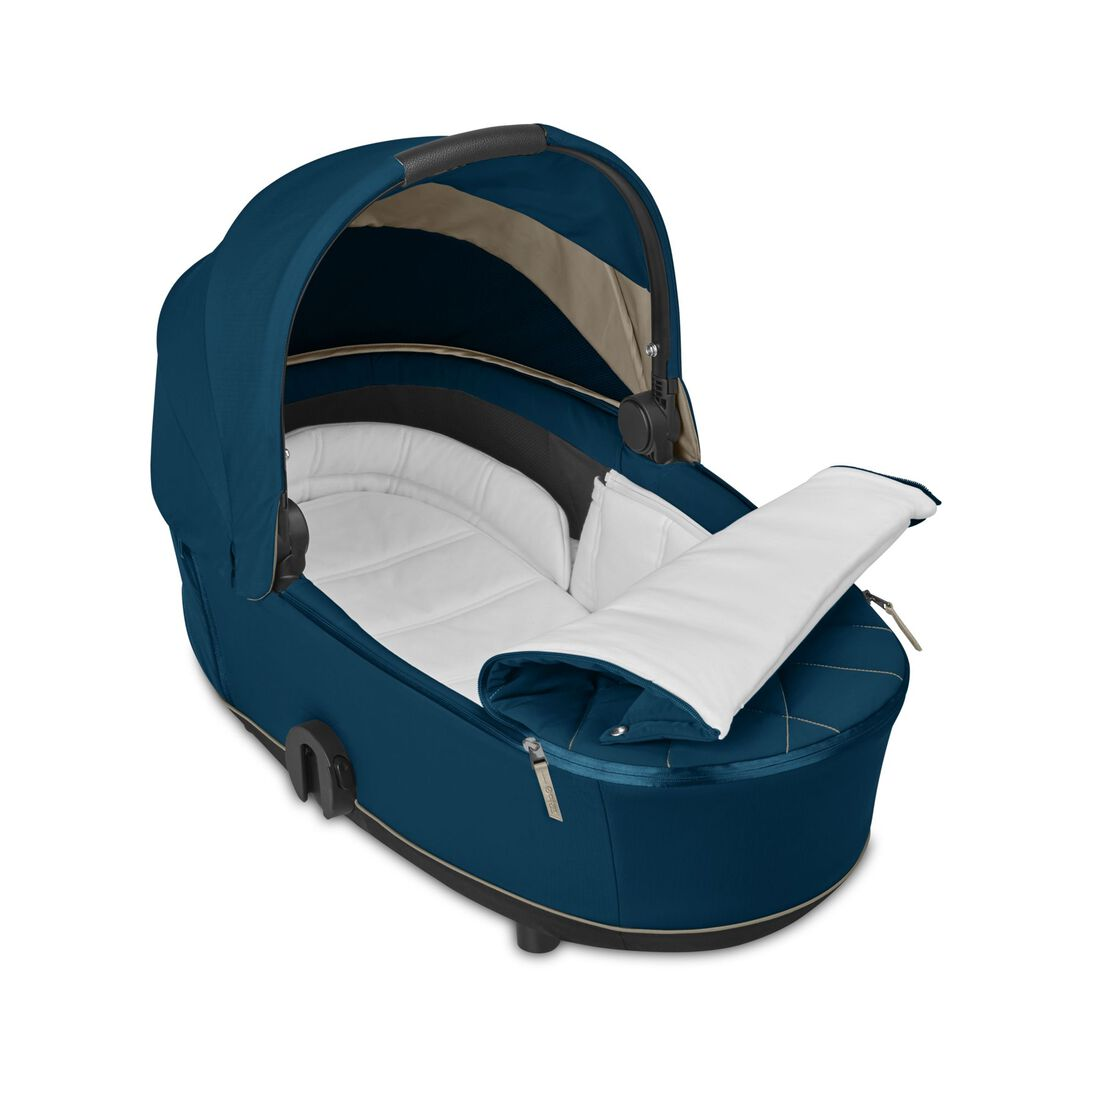 CYBEX Mios Lux Carry Cot - Mountain Blue in Mountain Blue large image number 2